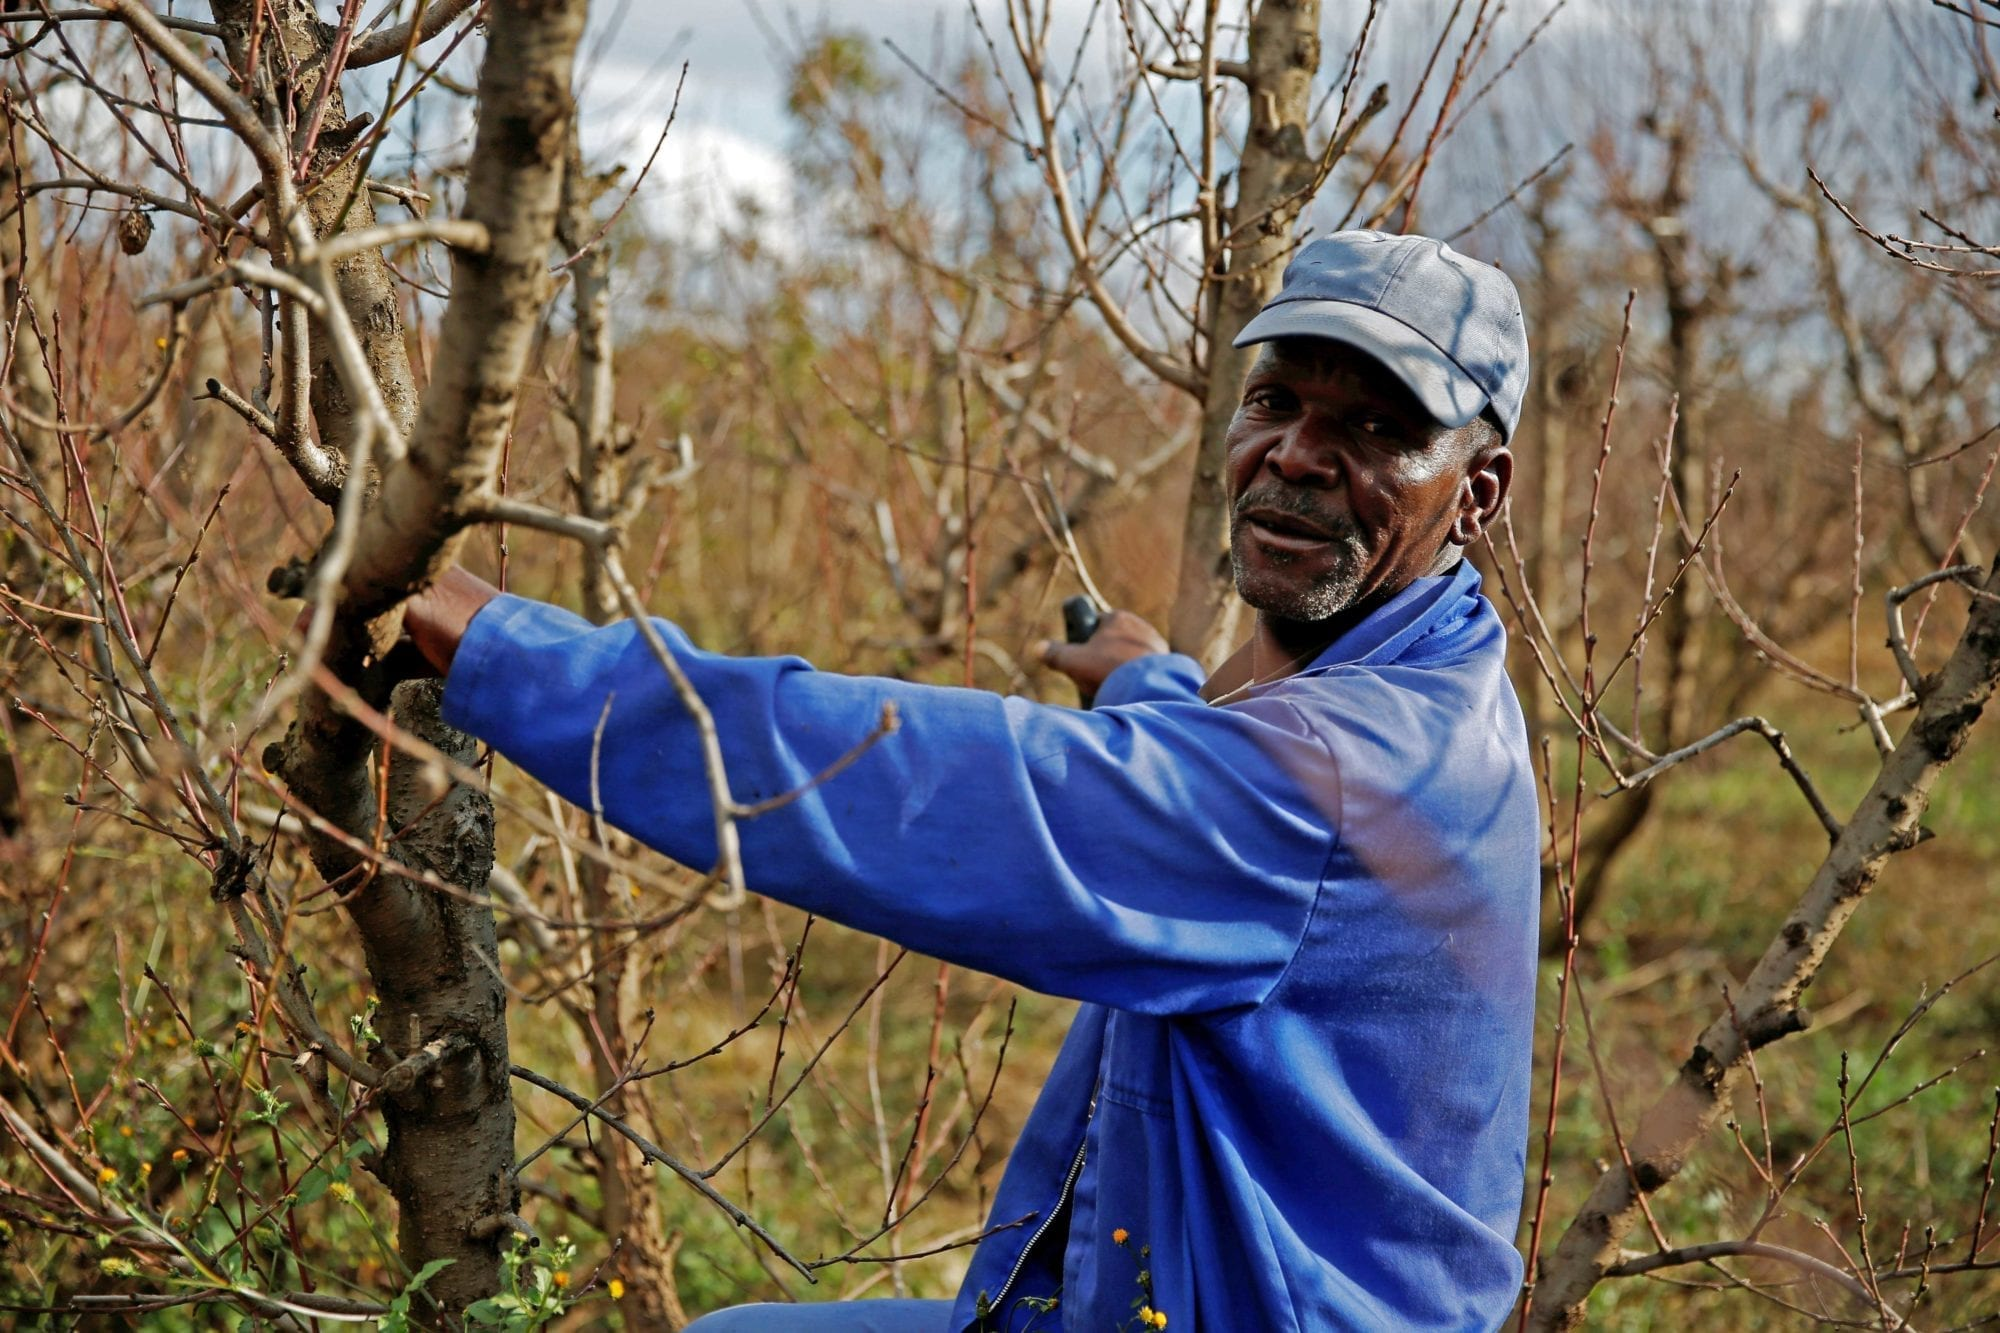 Farm Workers' Global Struggle for Rights on the Job